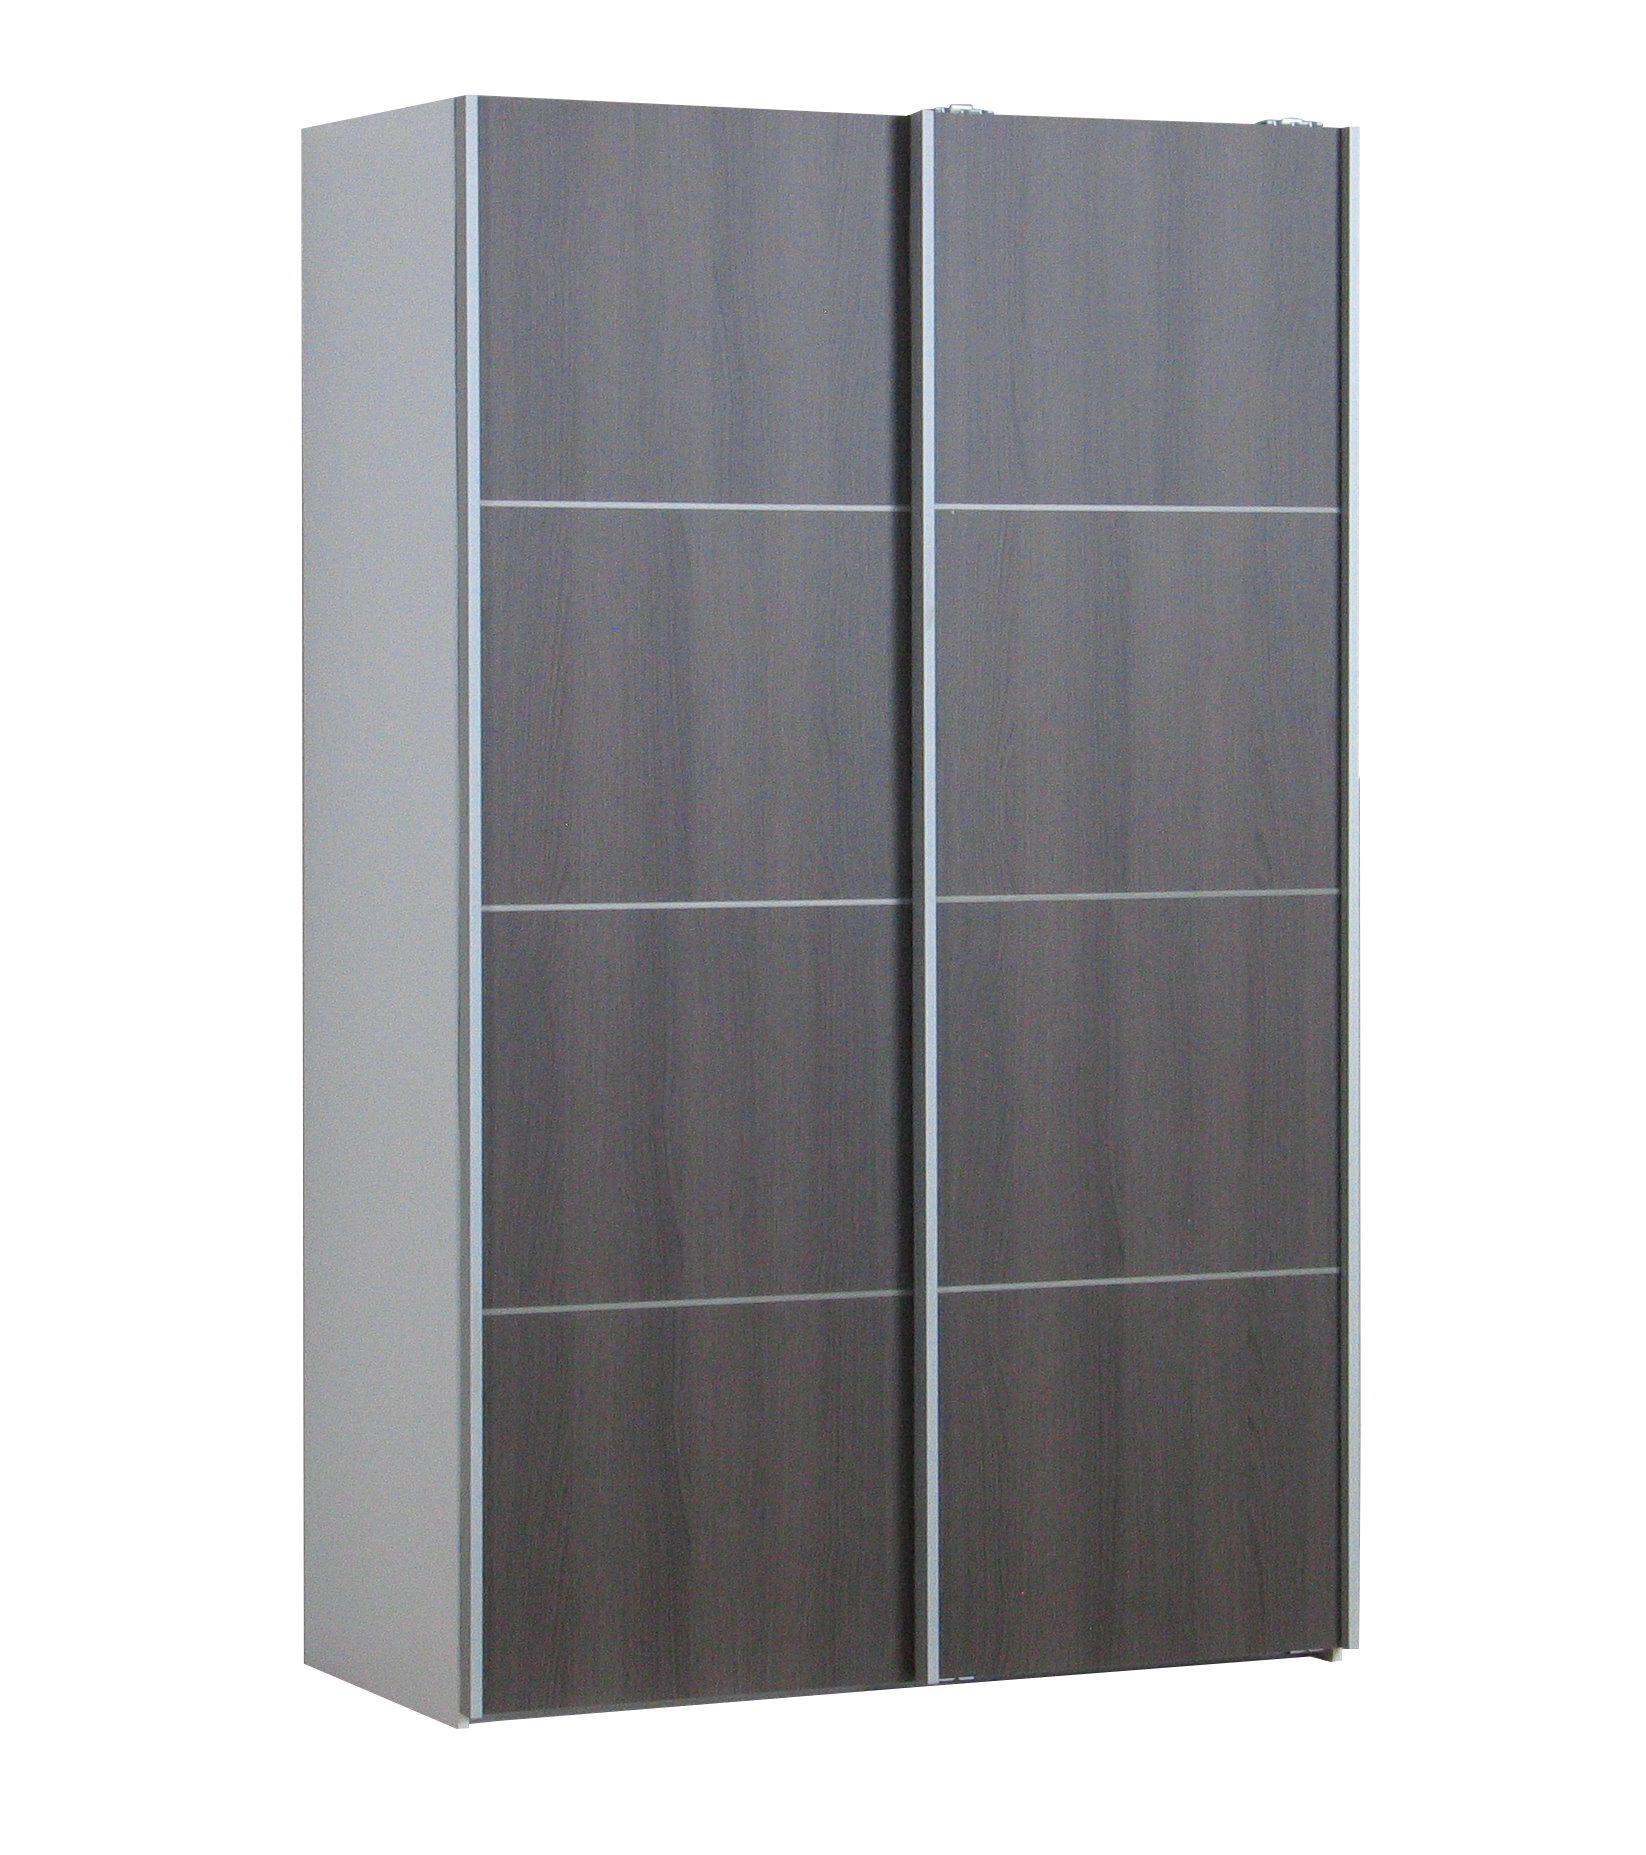 kleiderschrank verona schiebet ren schwebet ren. Black Bedroom Furniture Sets. Home Design Ideas